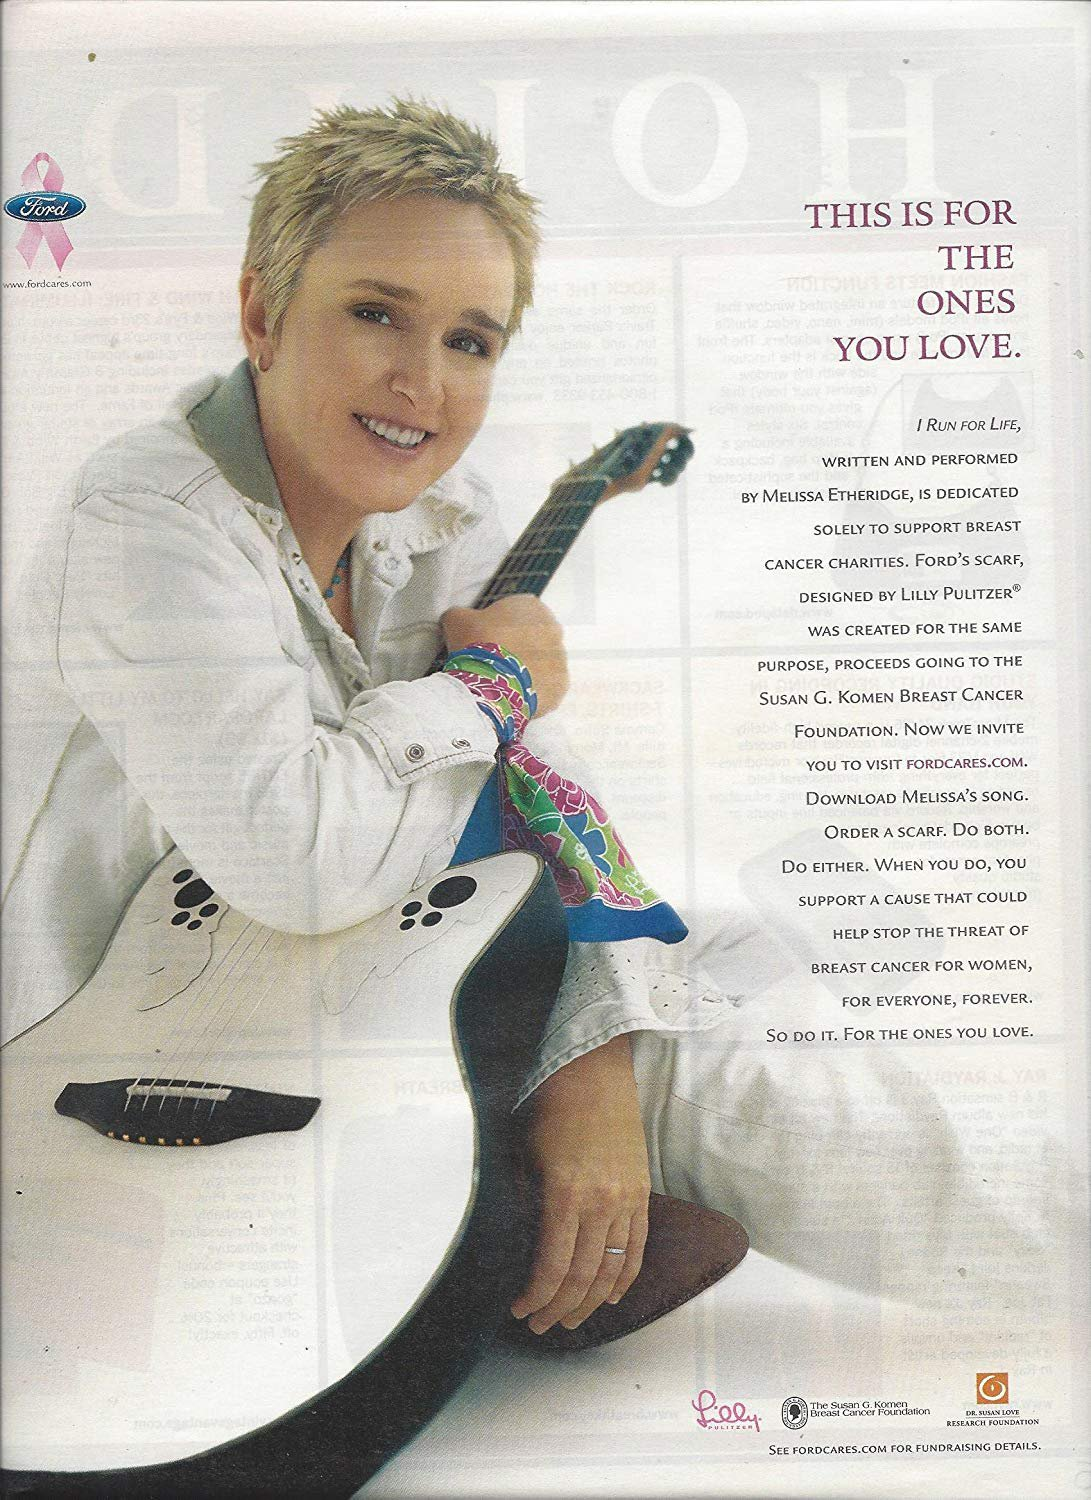 Magazine Paper Print Ad With Melissa Etheridge For Ford Breast Cancer Foundation